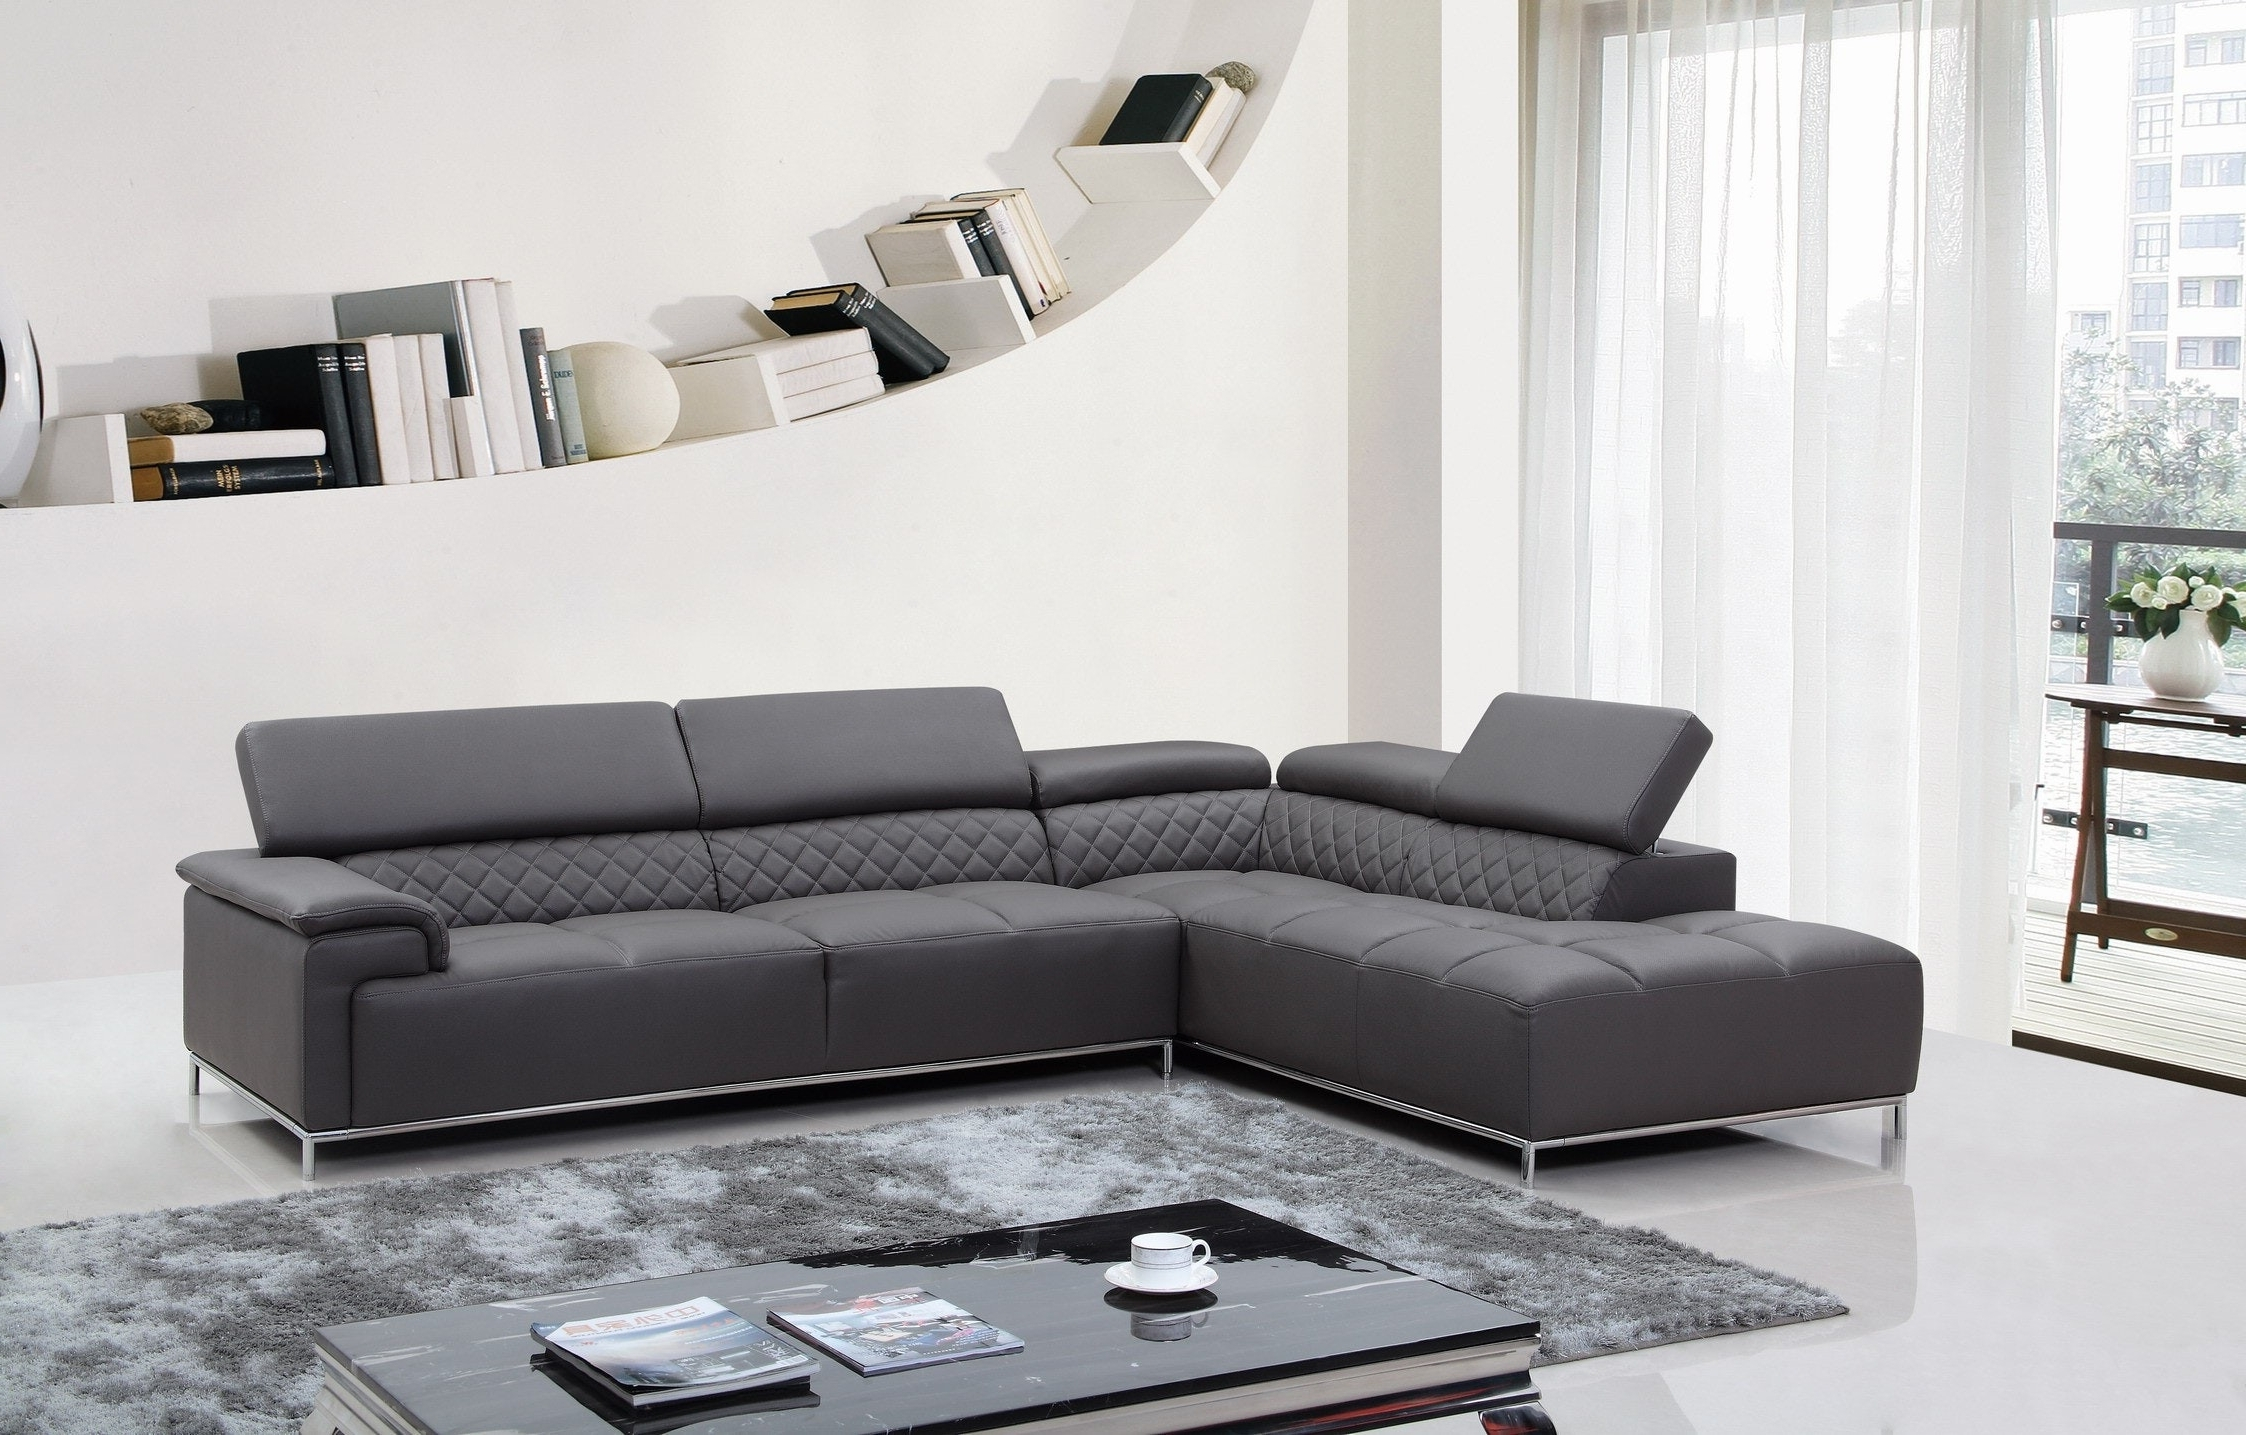 Popular Sectional Sofas Under 600 Regarding Furniture : Awesome Cheap Sectional Sofas Under 300 Best Of (View 7 of 20)